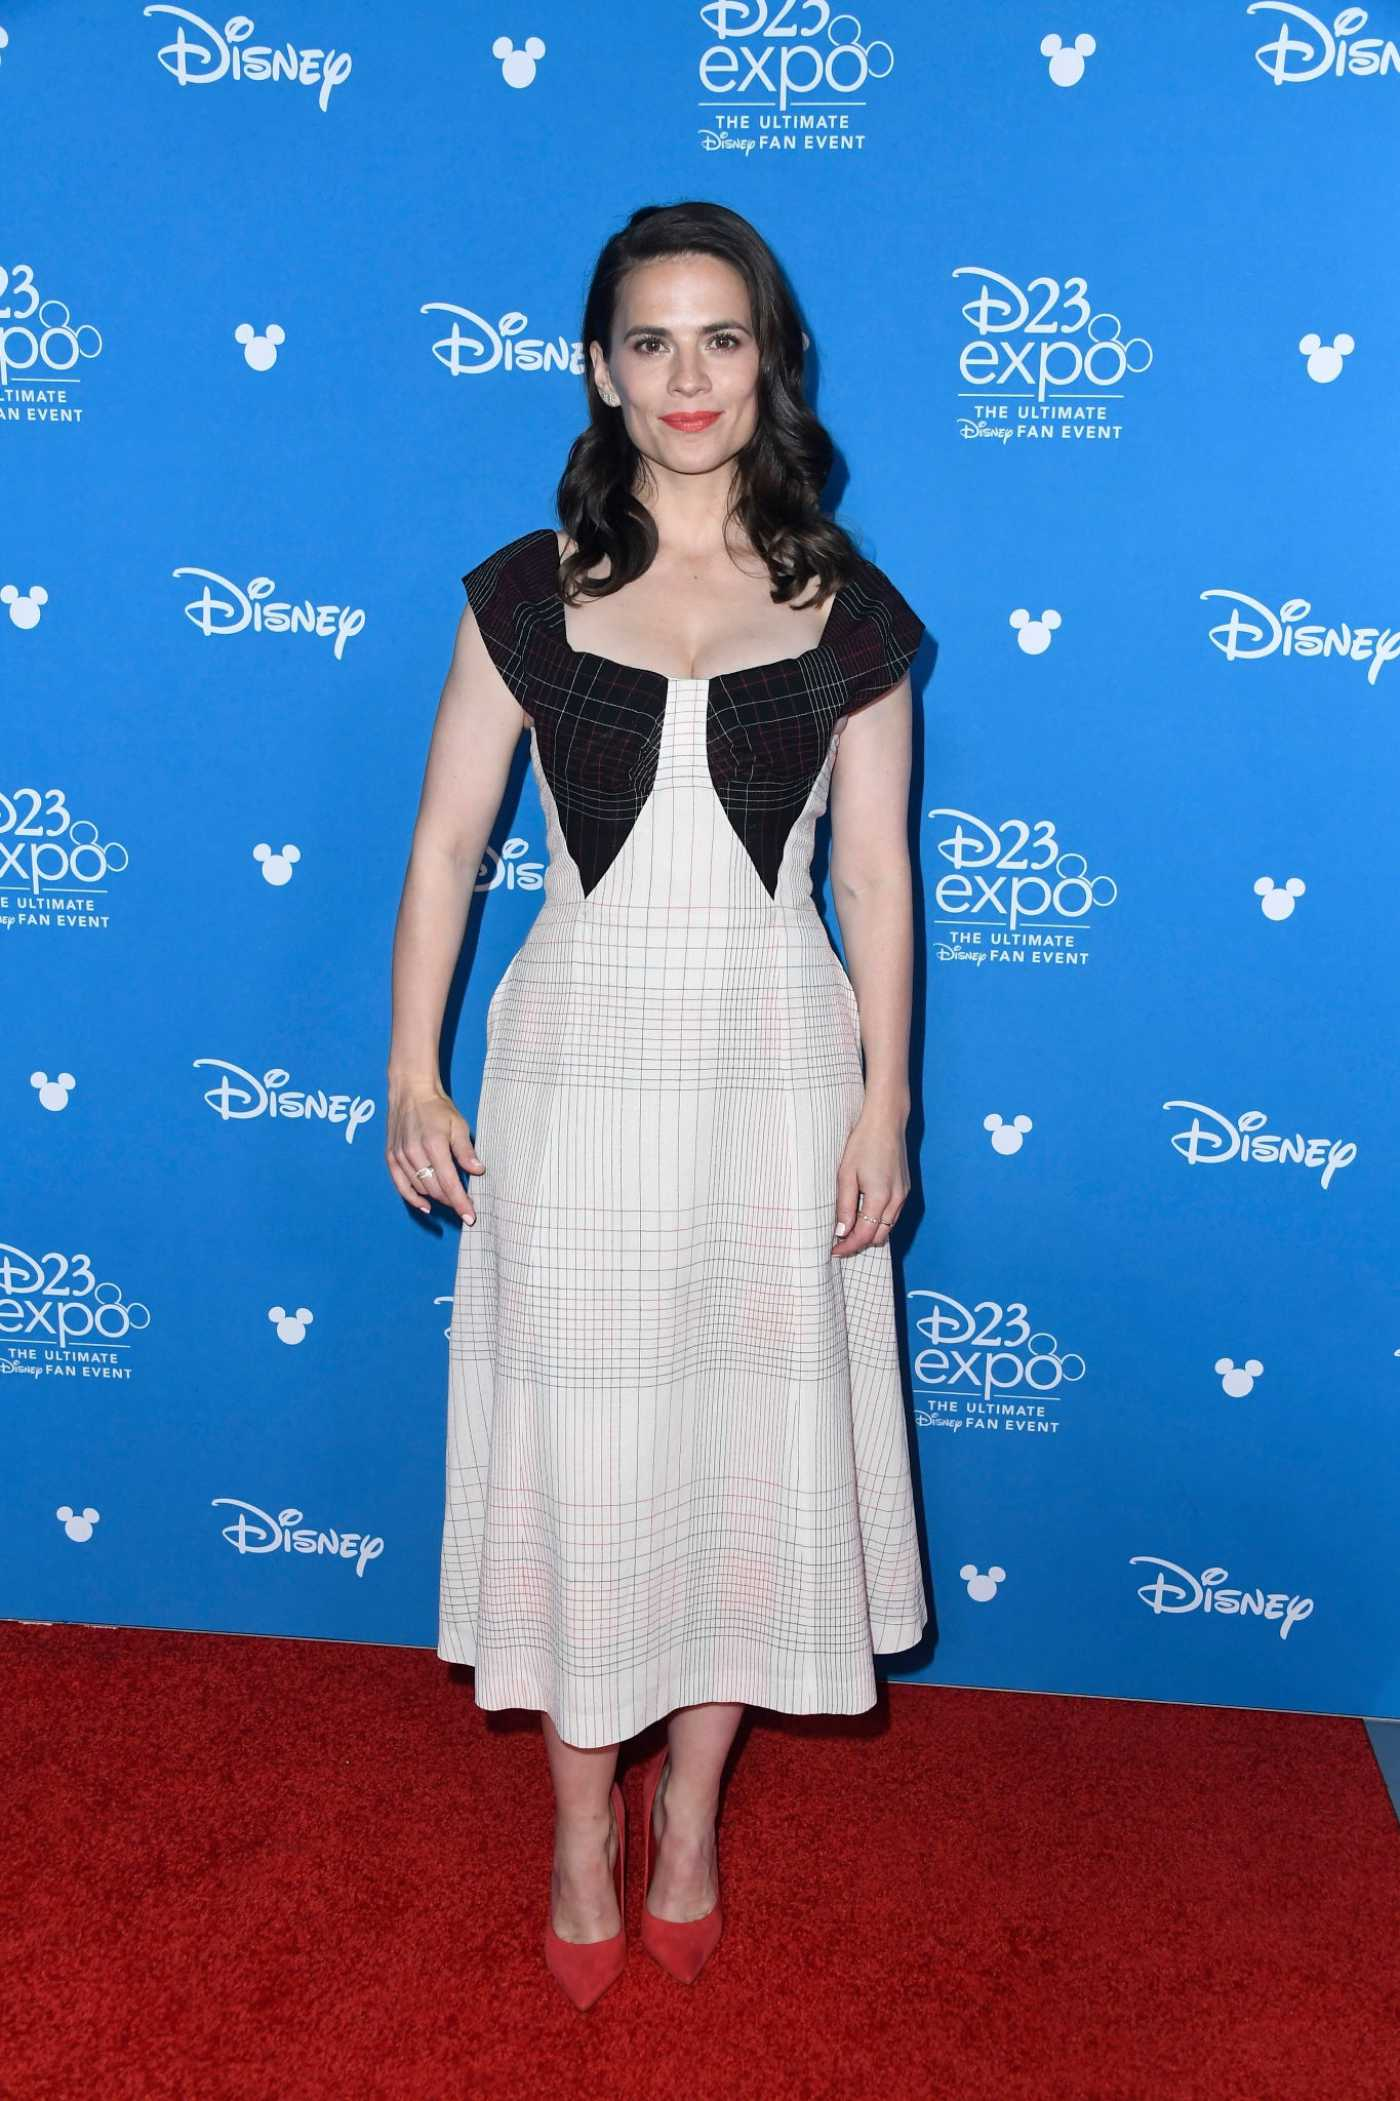 Hayley Atwell Attends D23 Disney + Event at Anaheim Convention Center in Anaheim 08/23/2019